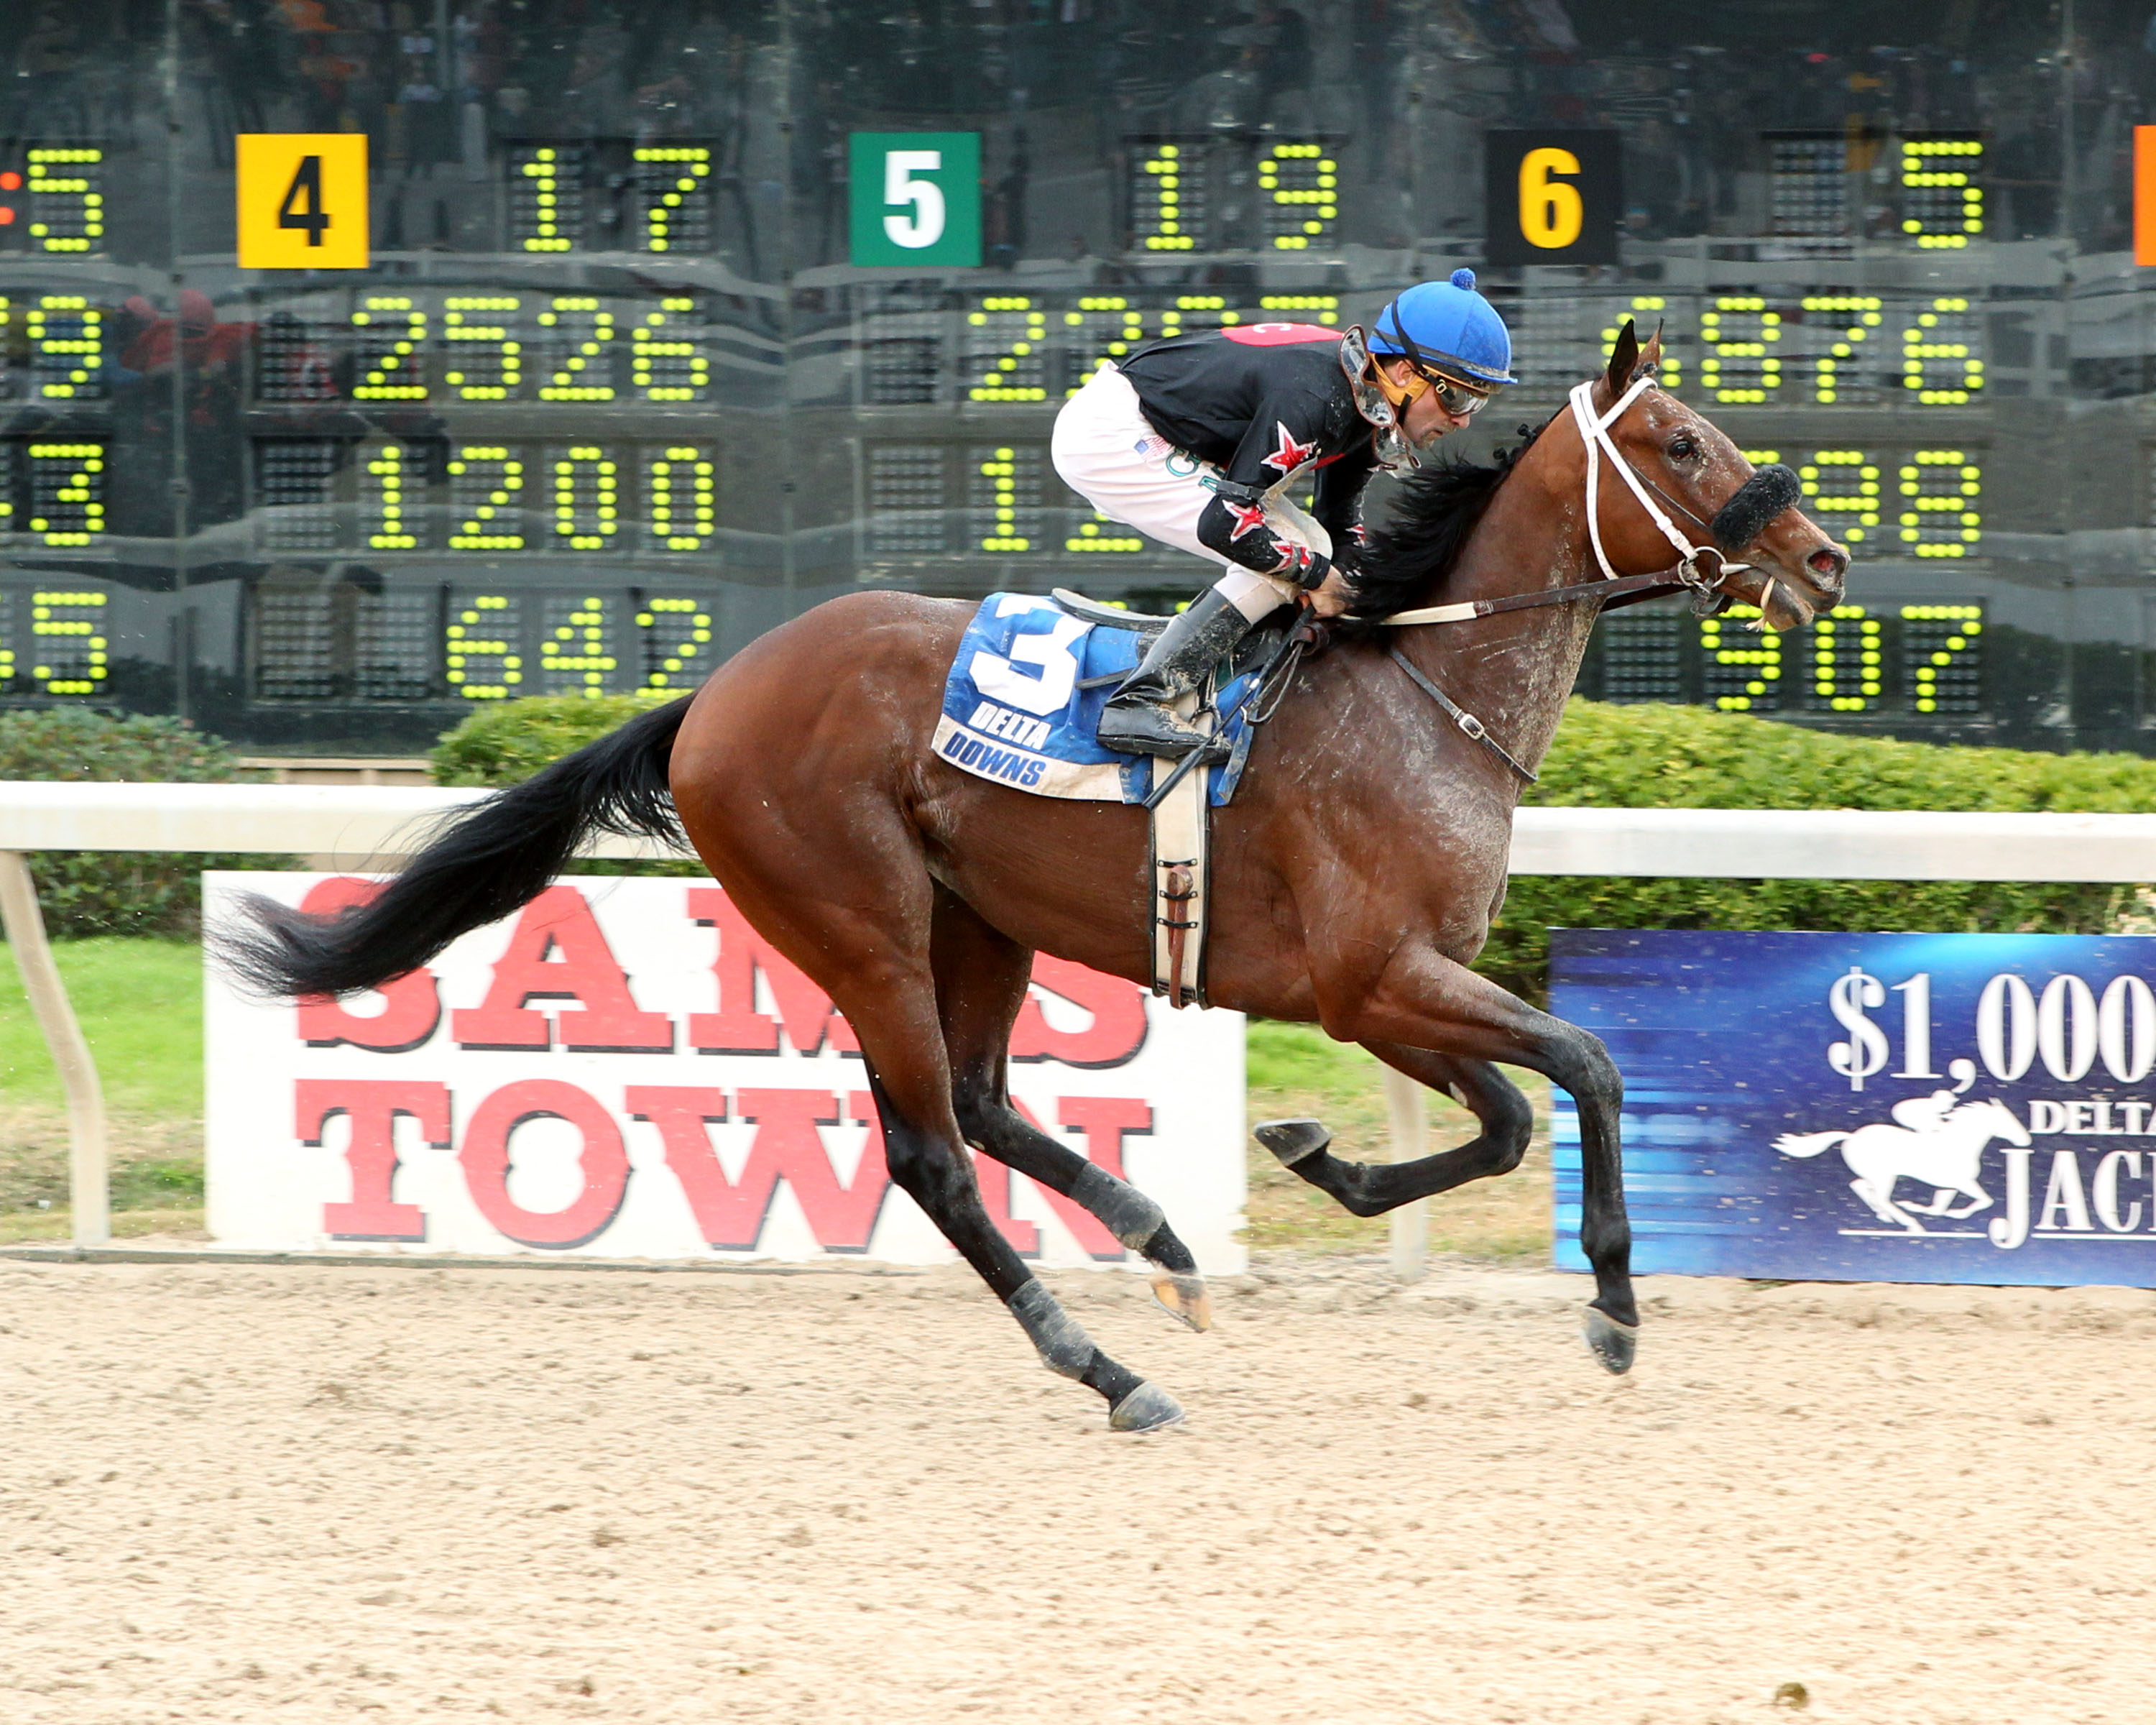 FOUR LEAF CHIEF - The 6th Running of Louisiana Legacy Stakes - 11-22-14 - R03 - DED -Finish